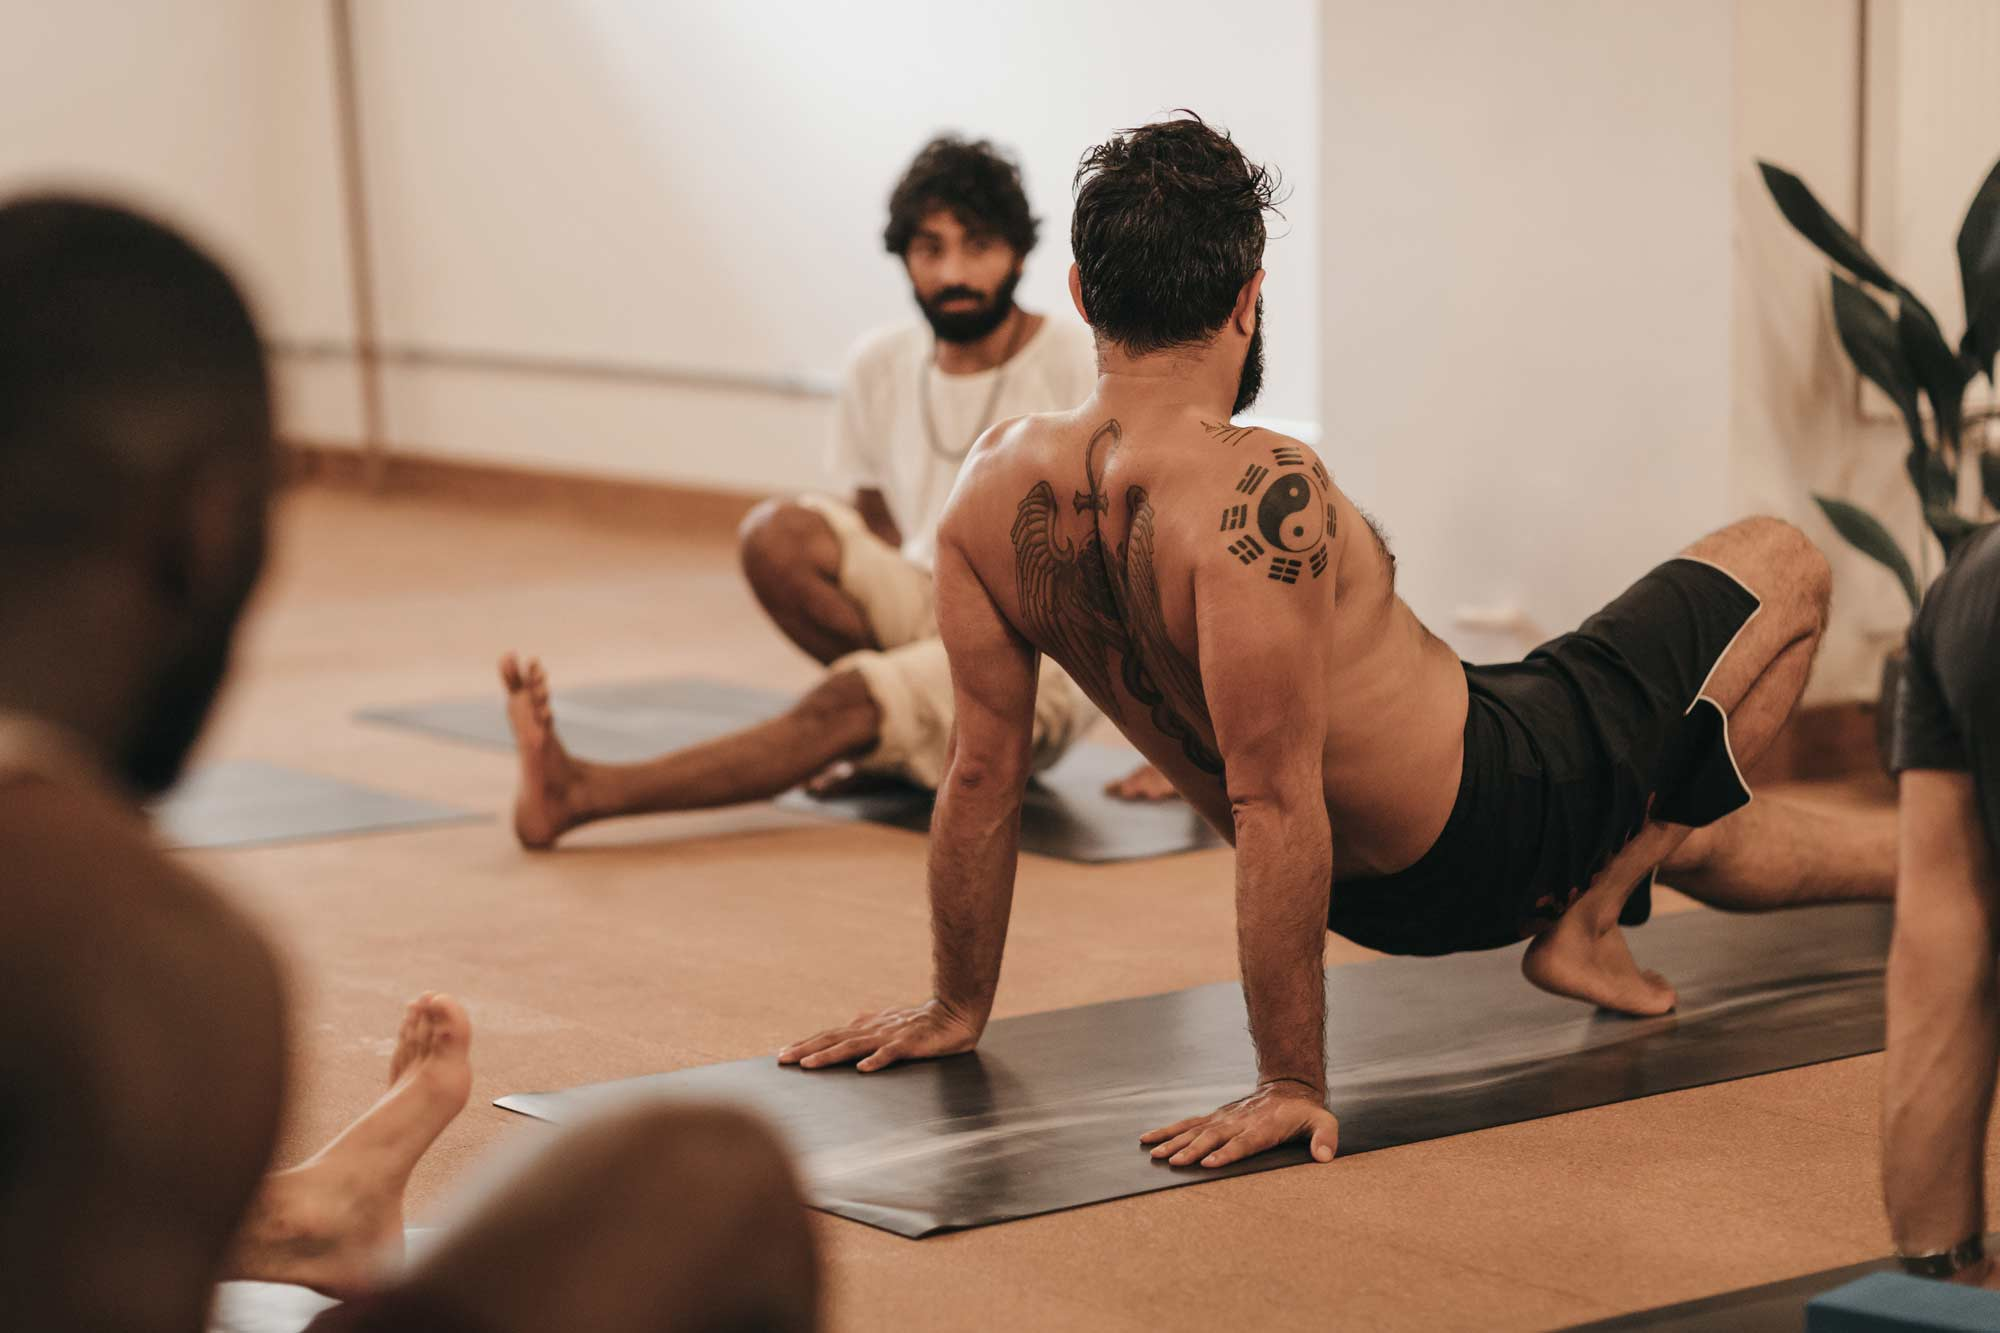 Yoga teacher teaching a male focused yoga class